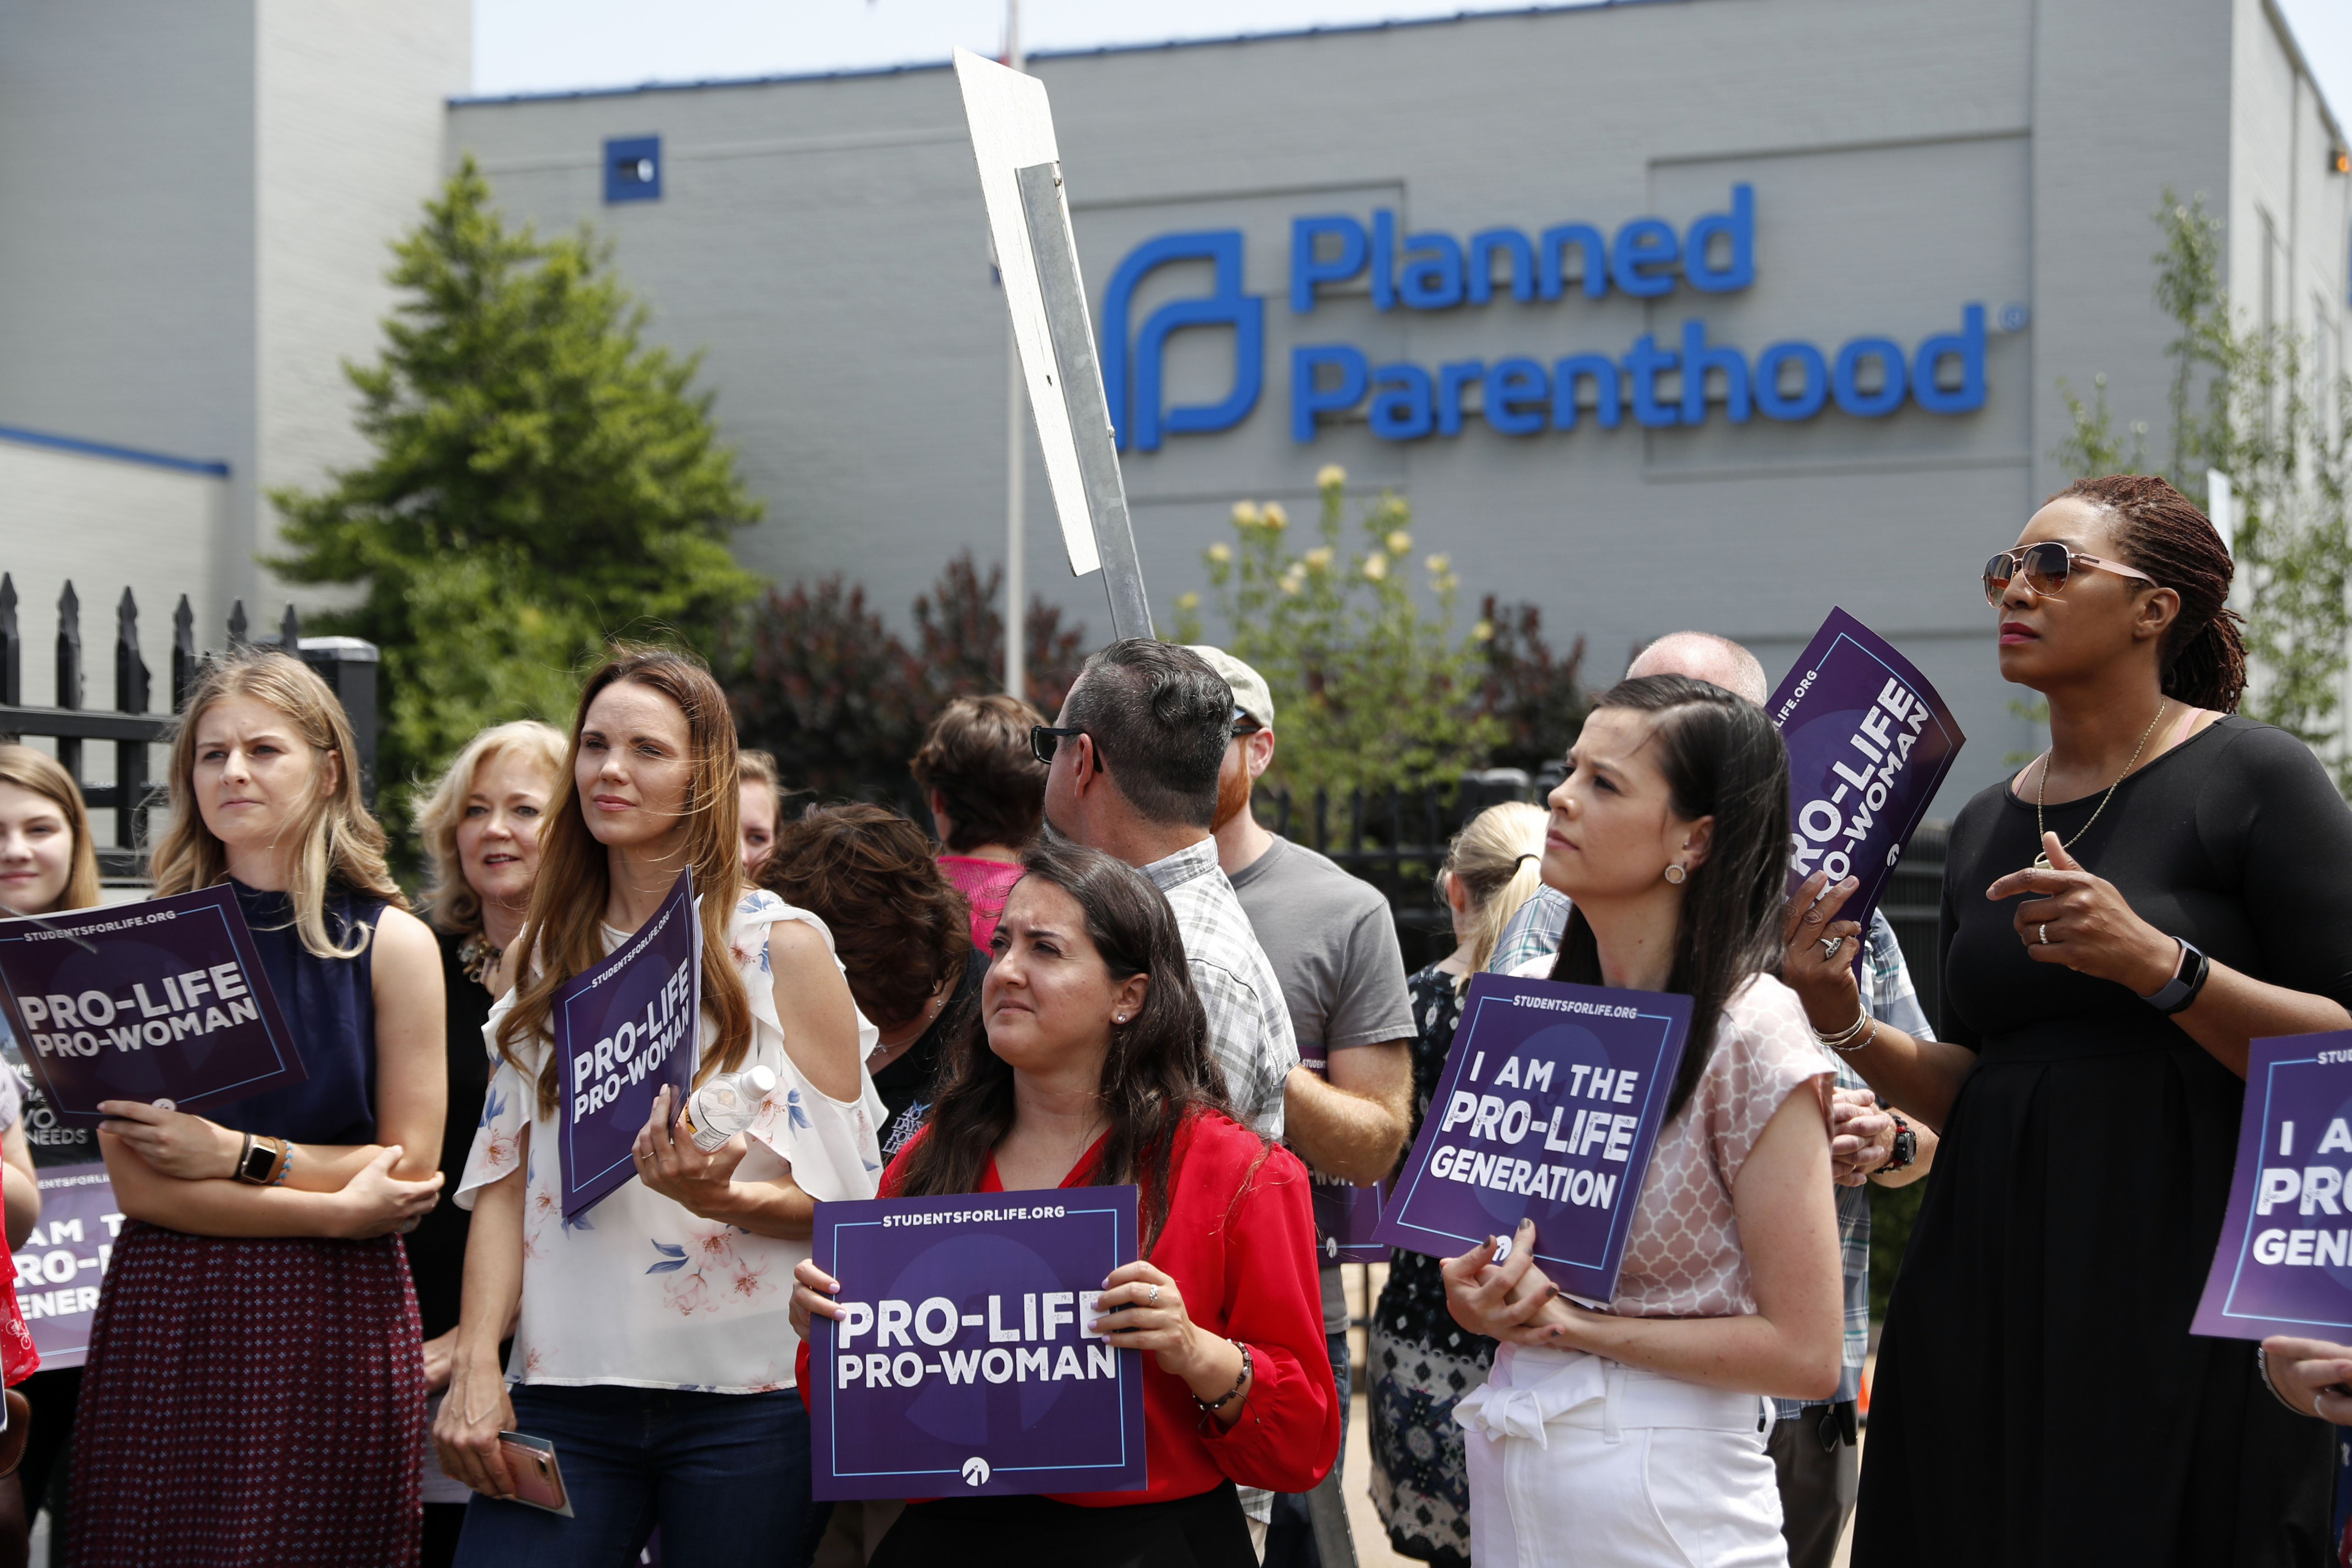 US abortion rates lowest in decades, report finds